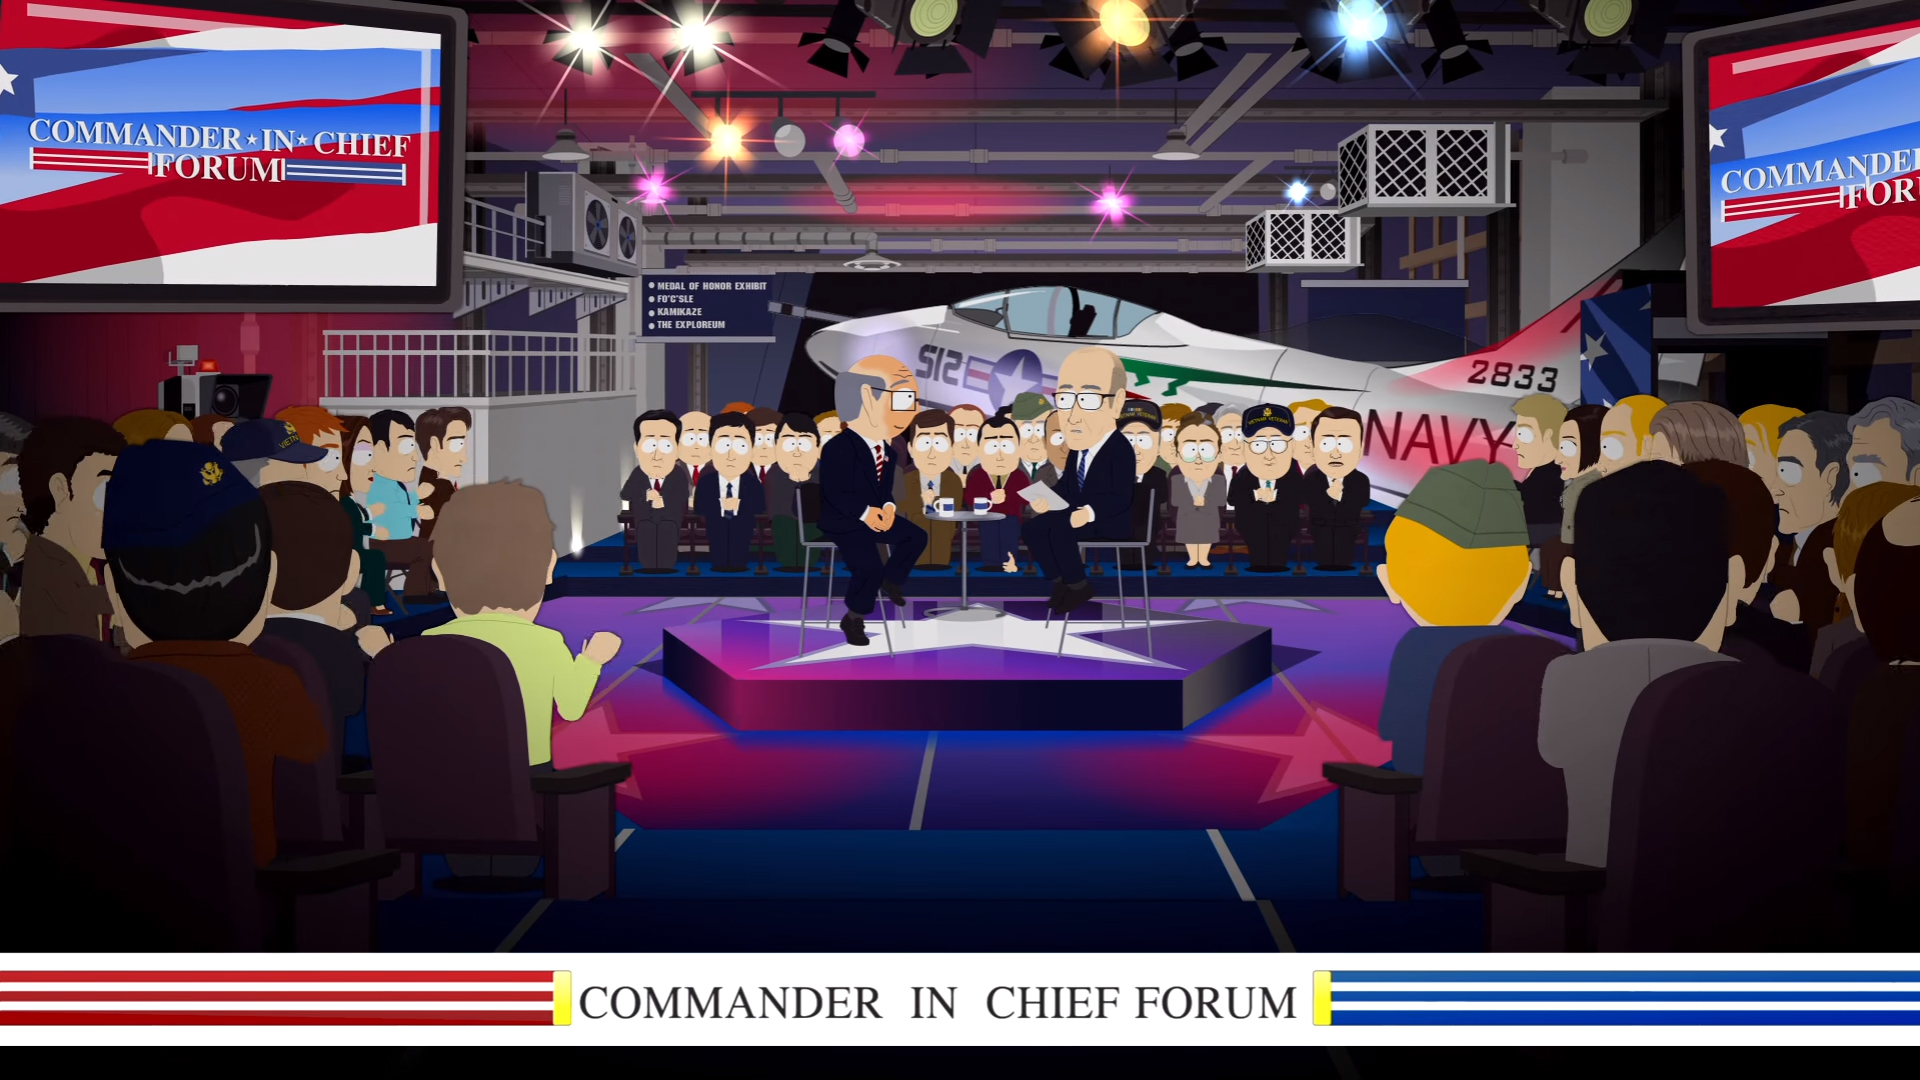 NBC Commander In Chief Forum 2016 - South Park Spoof